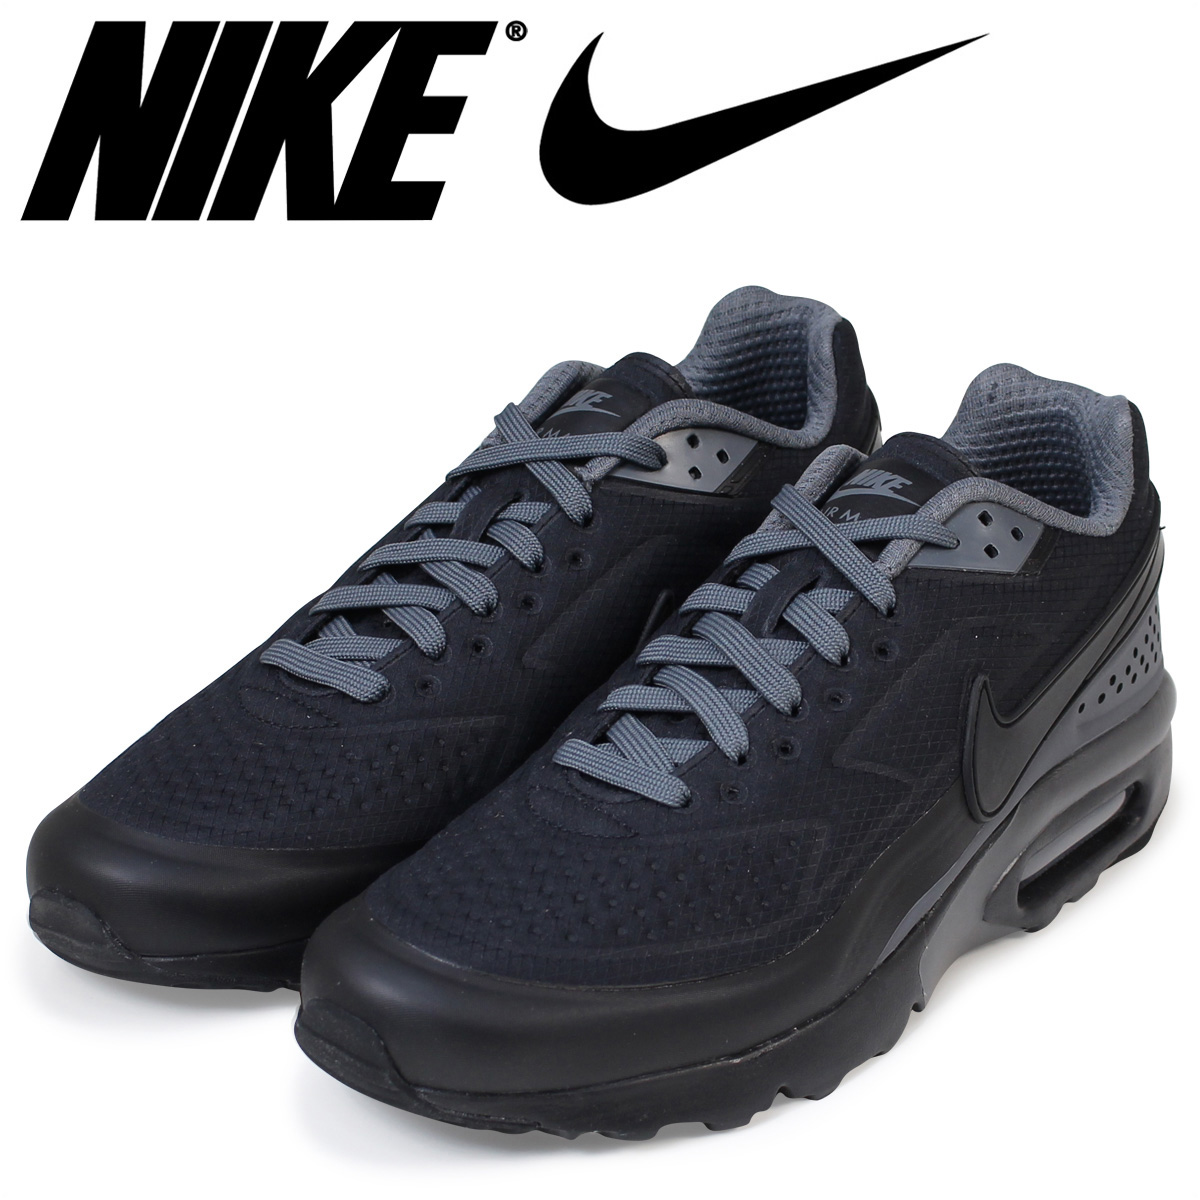 la moitié 7ee4b 3099e Nike NIKE Air Max 90 ultra SE sneakers AIR MAX BW ULTRA SE 844,967-002  men's black